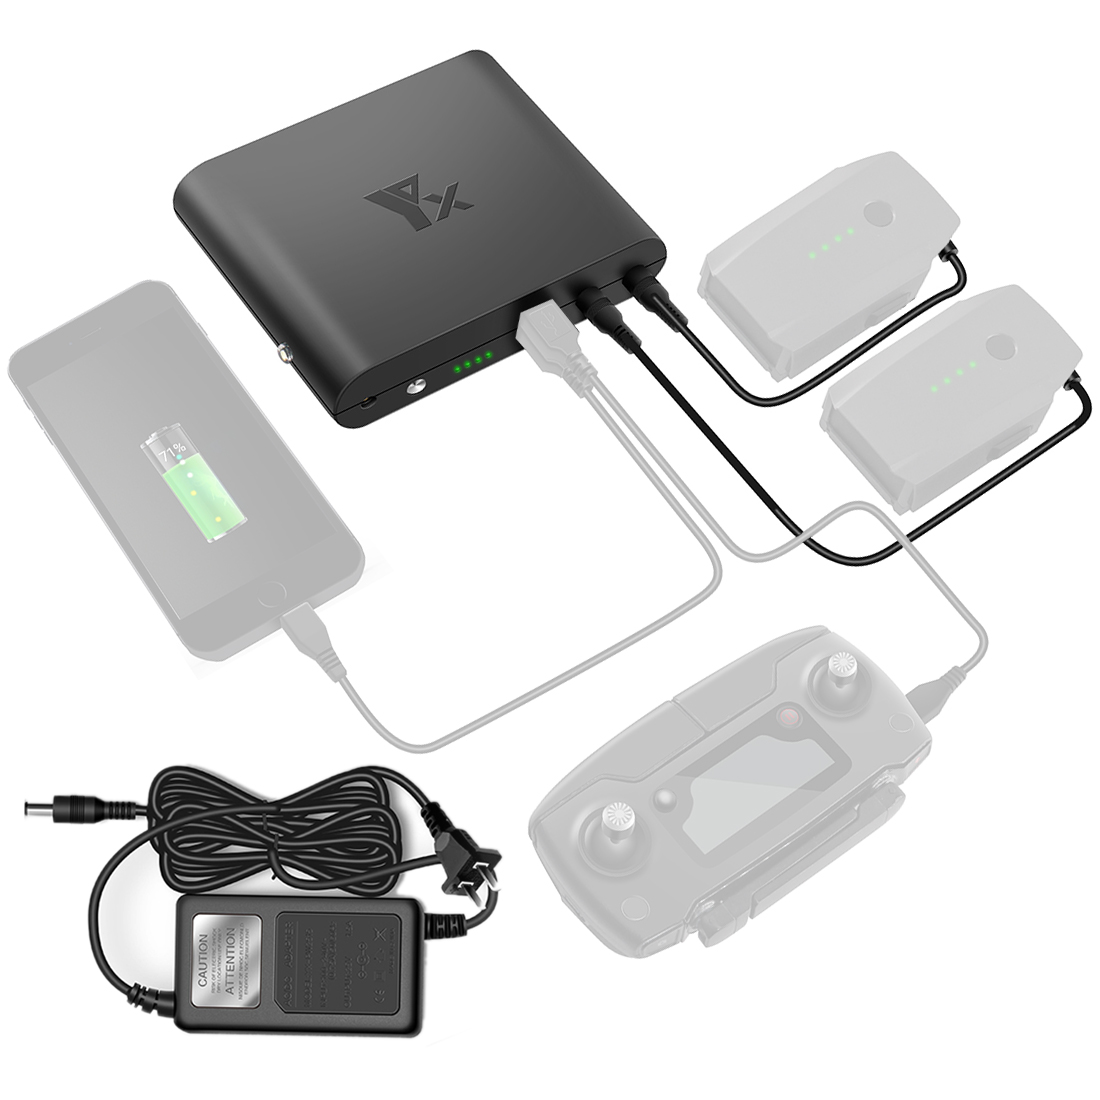 Charging Power Bank Mobile Power Transverter Outdoor Charger for DJI Mavic Pro Battery Remote Controller Phone